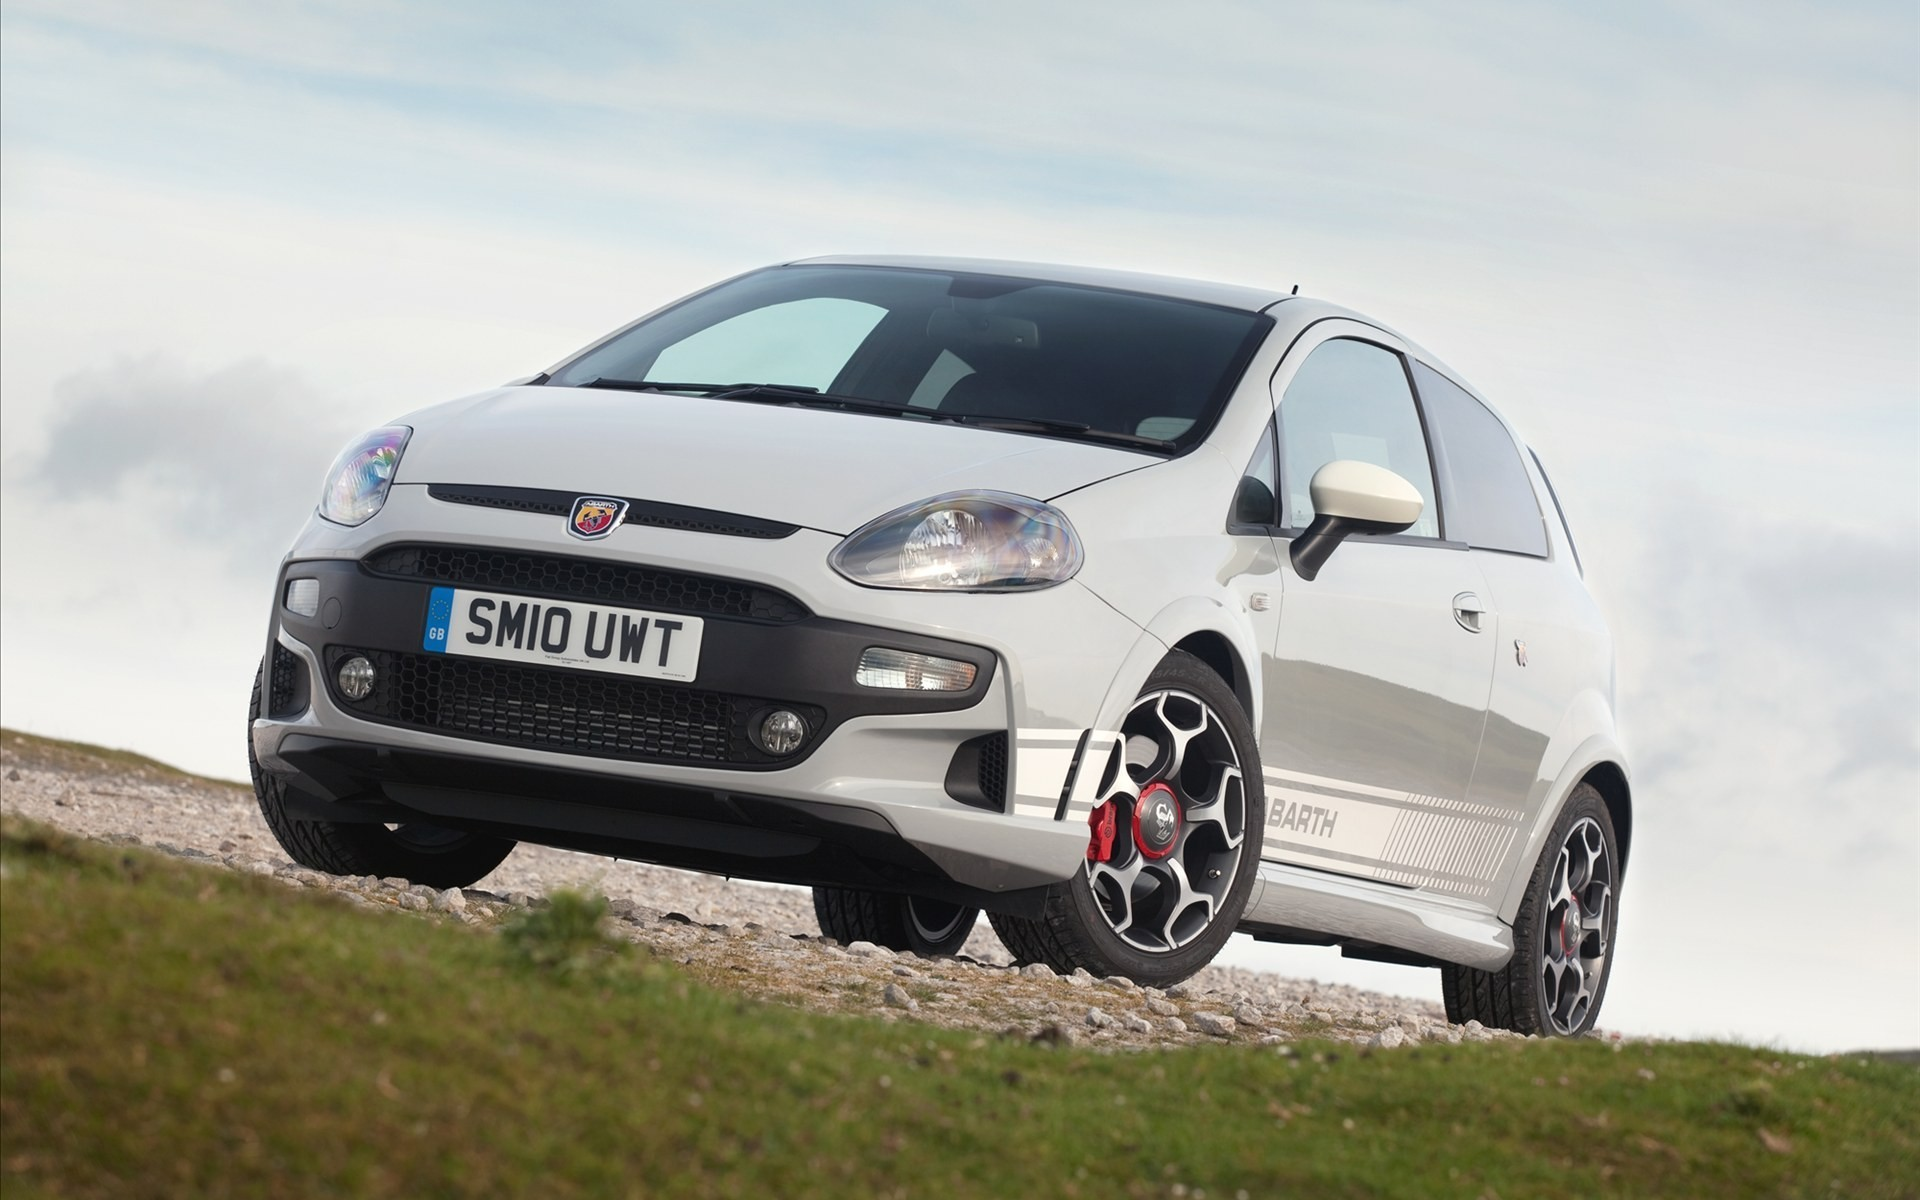 Fiat abarth grande punto HD Wallpaper